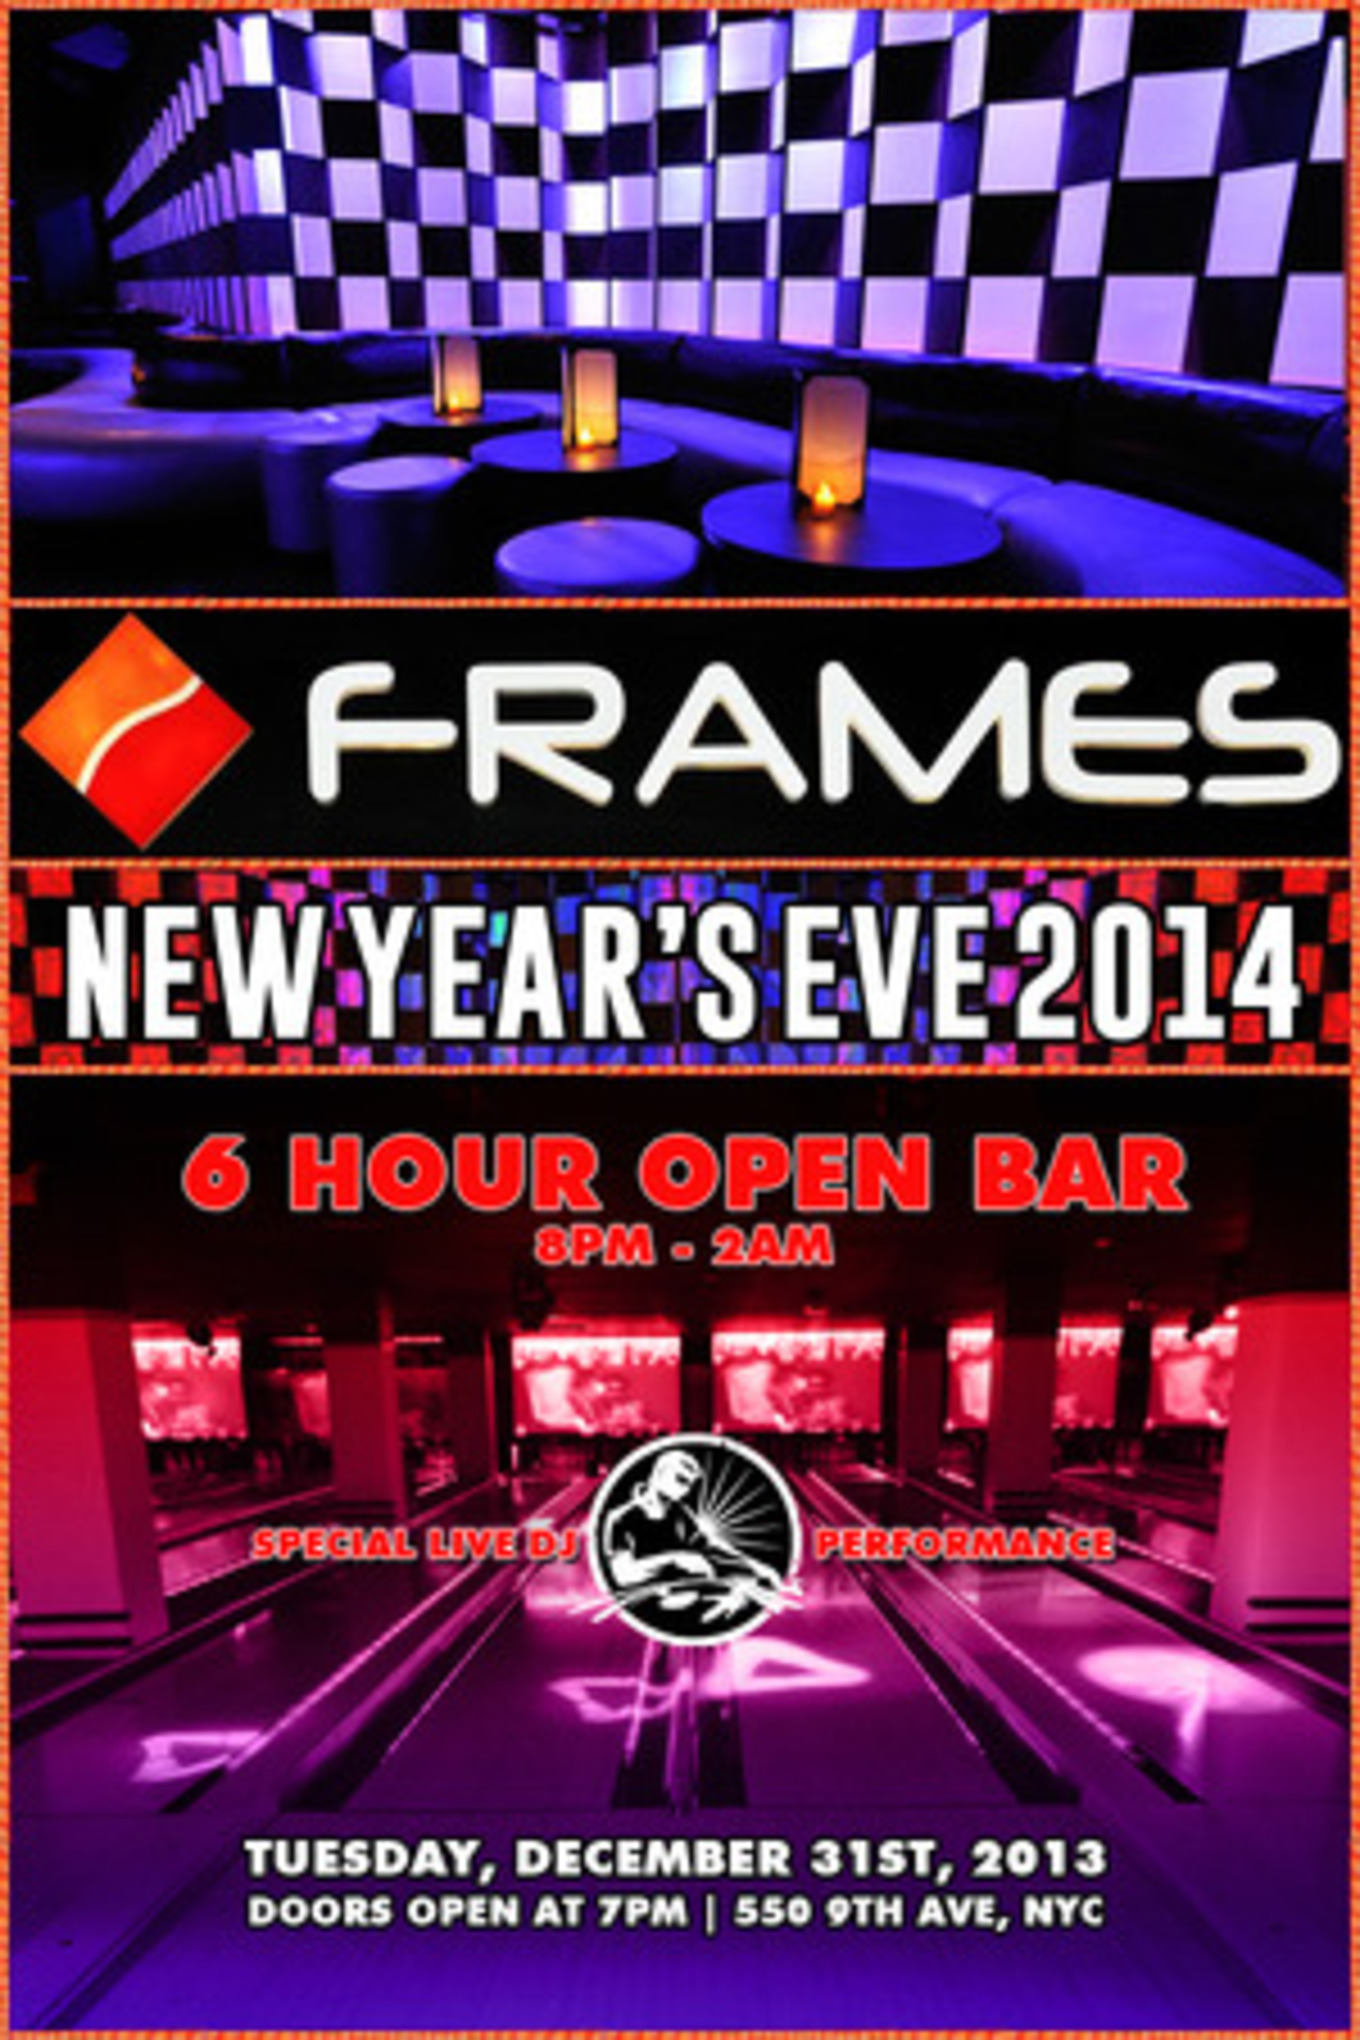 Frames Bowling Lounge New Years Eve 2014 - Frames Bowling Lounge ...